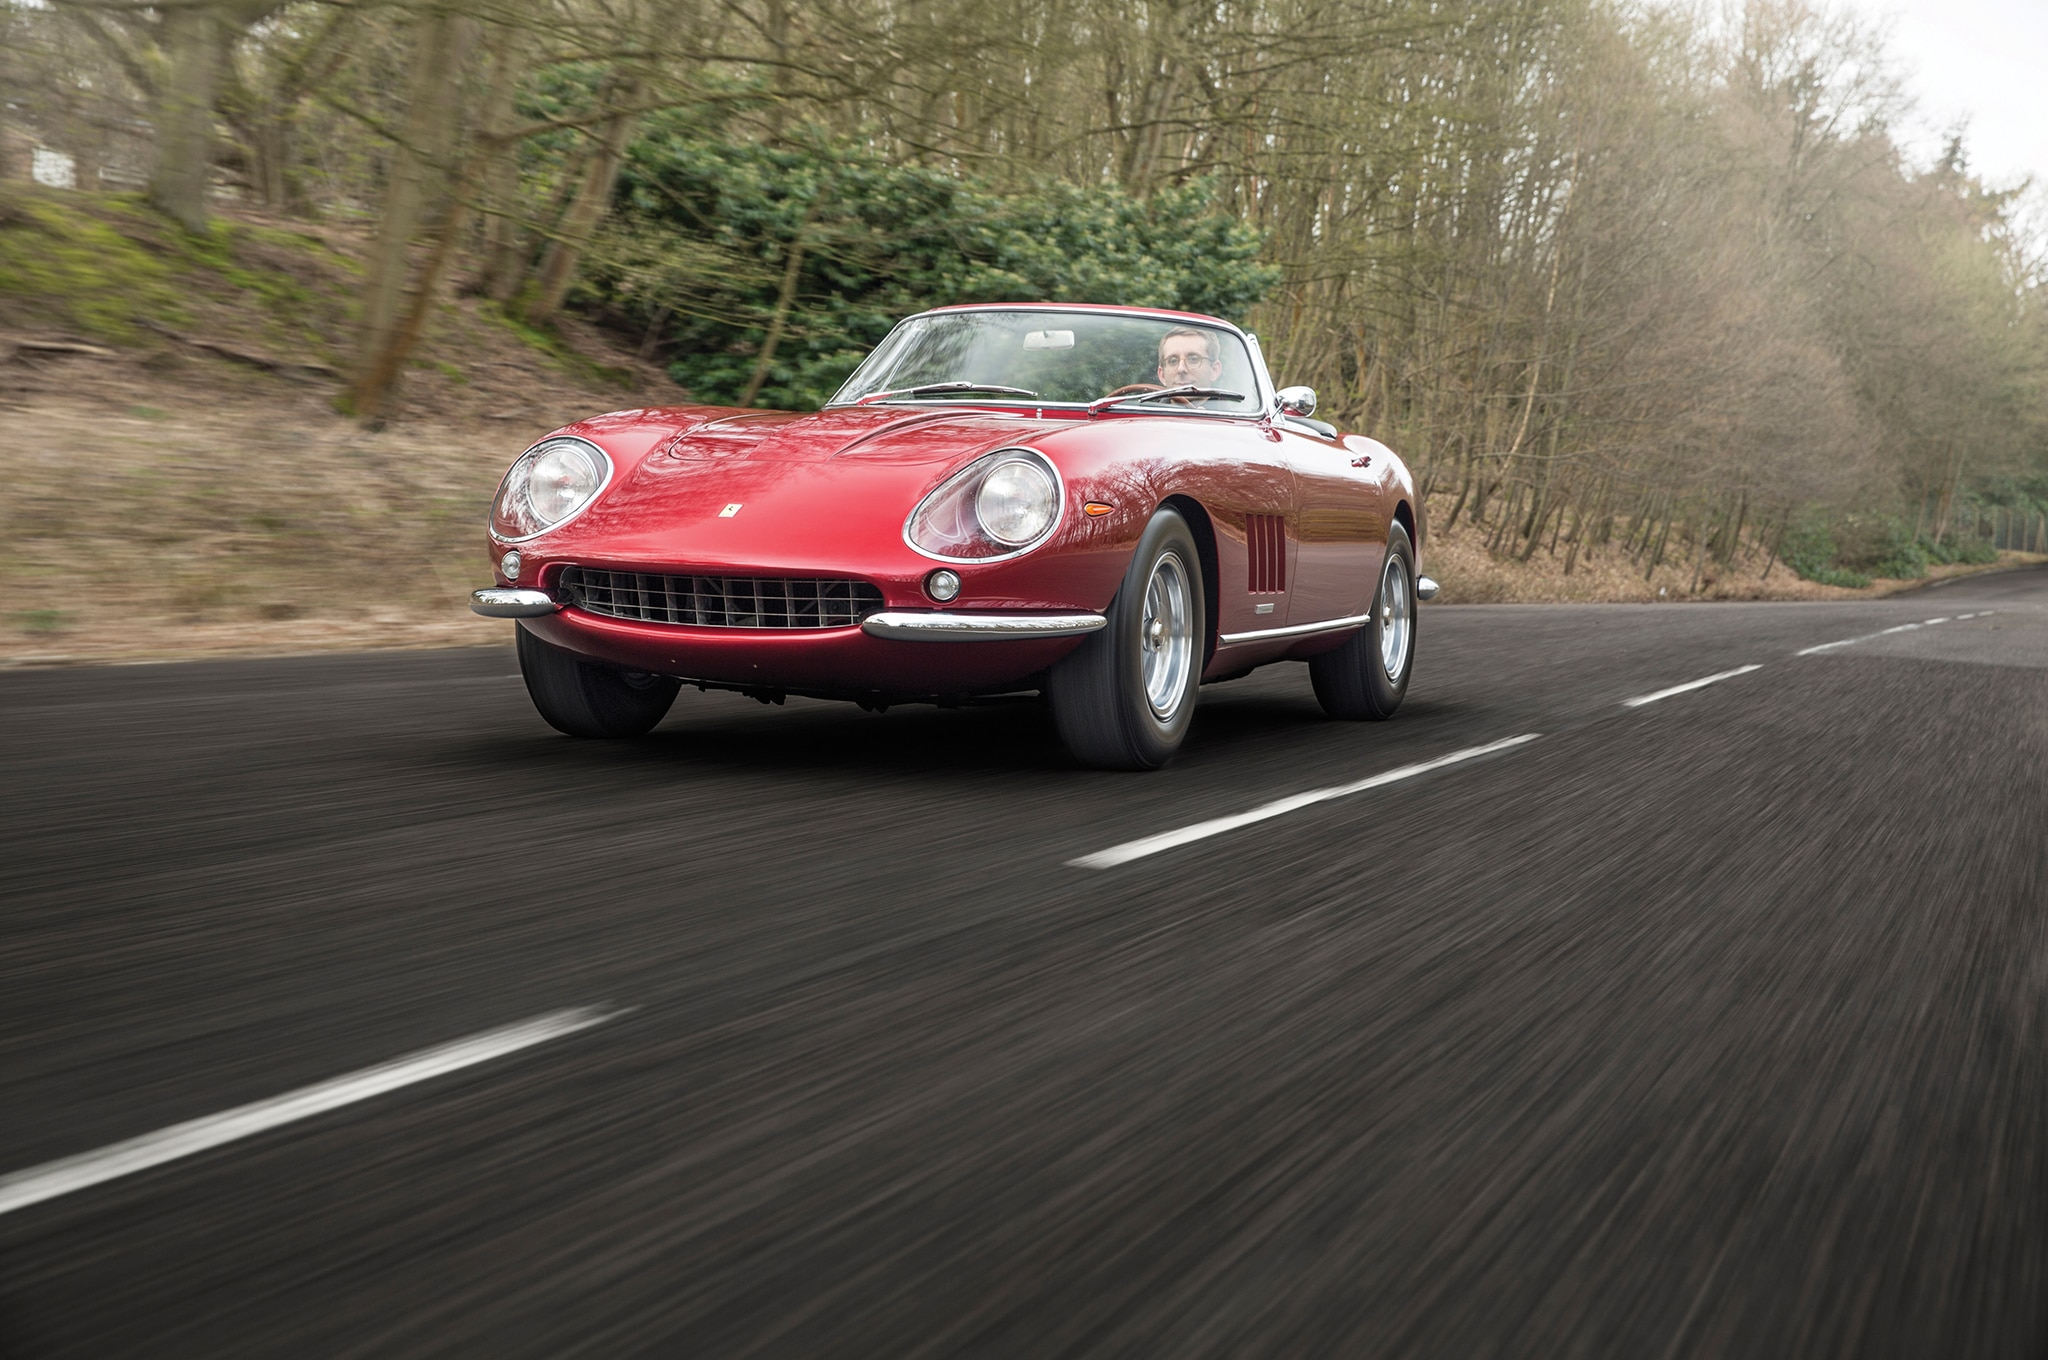 1968 Ferrari 275 GTB4 NART Spider Front In Motion